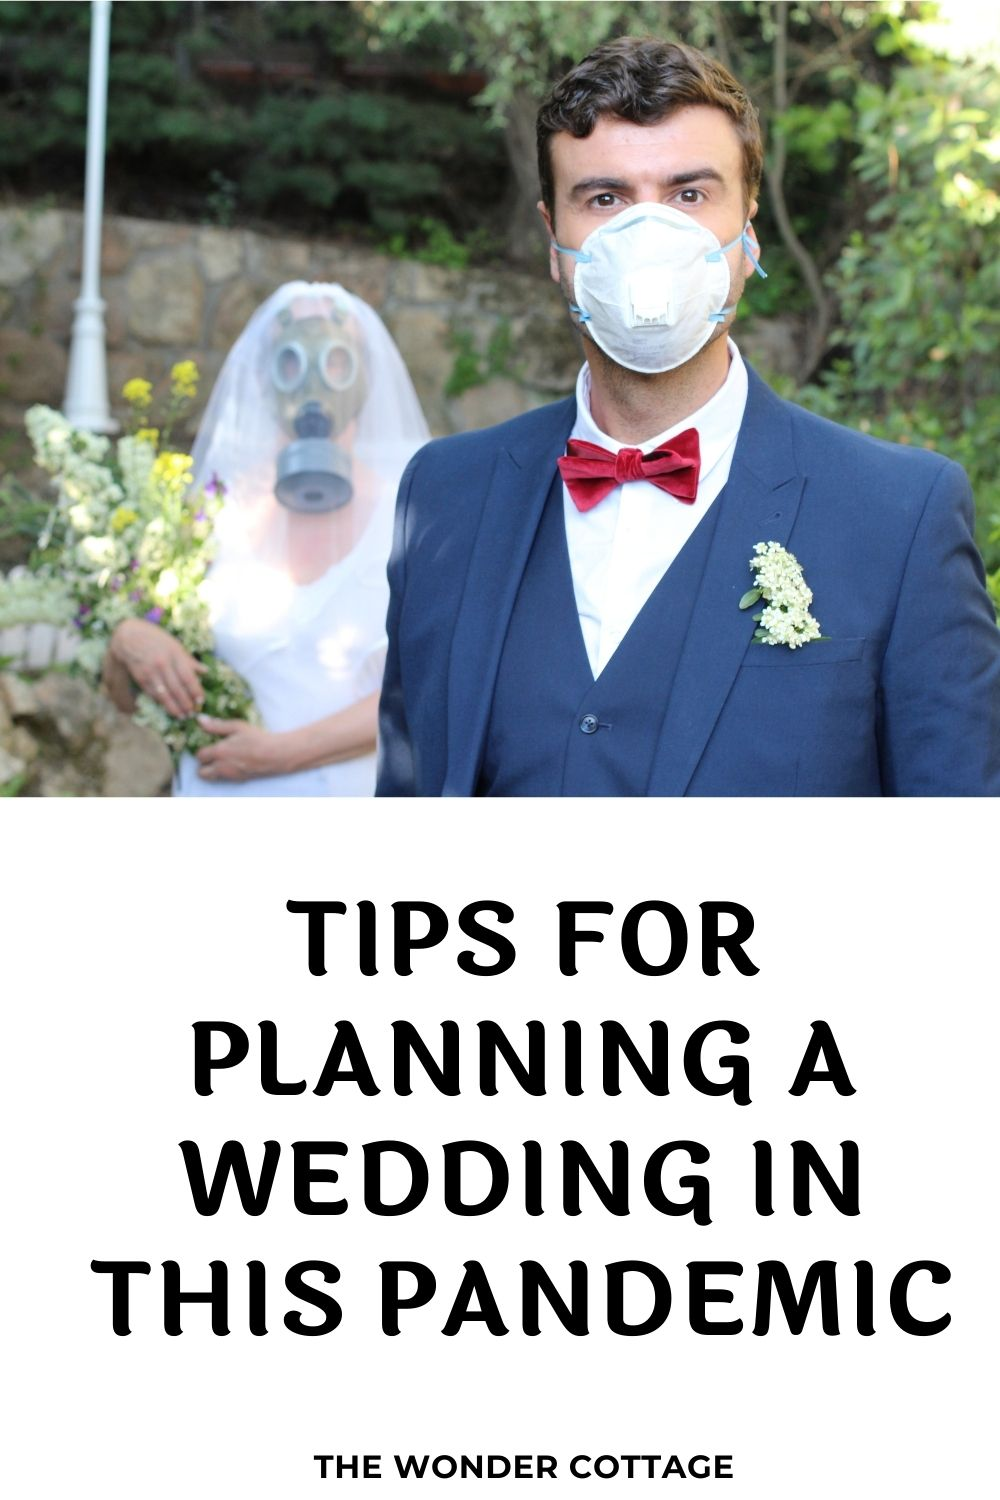 tips for planning a wedding in this pandemic